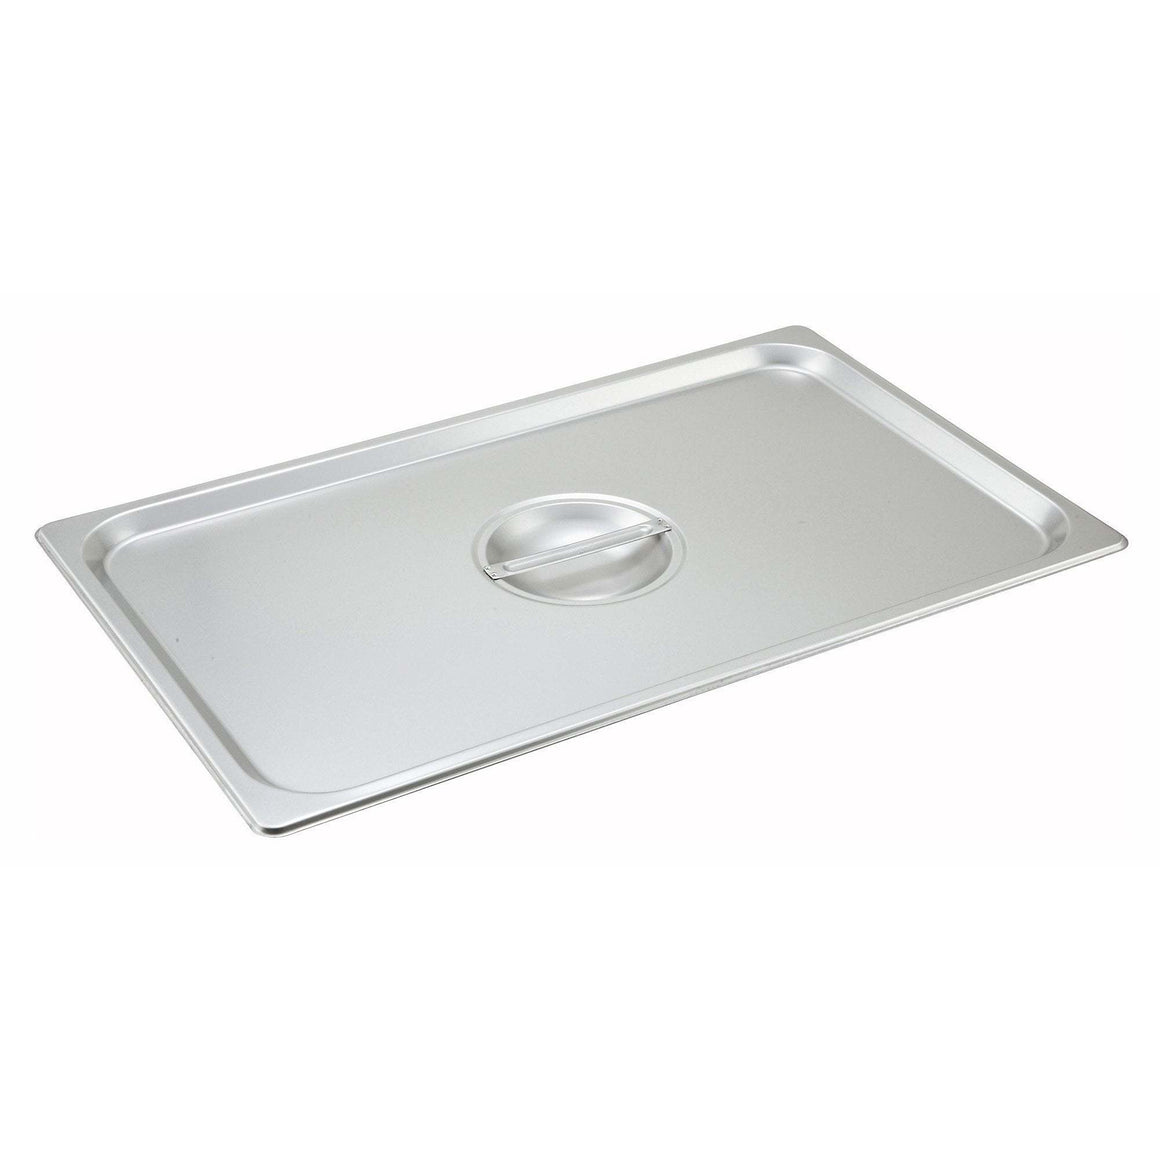 Winco - SPSCF - Stainless Steel Steam Pan Cover, Full-size, Solid - Steam Table